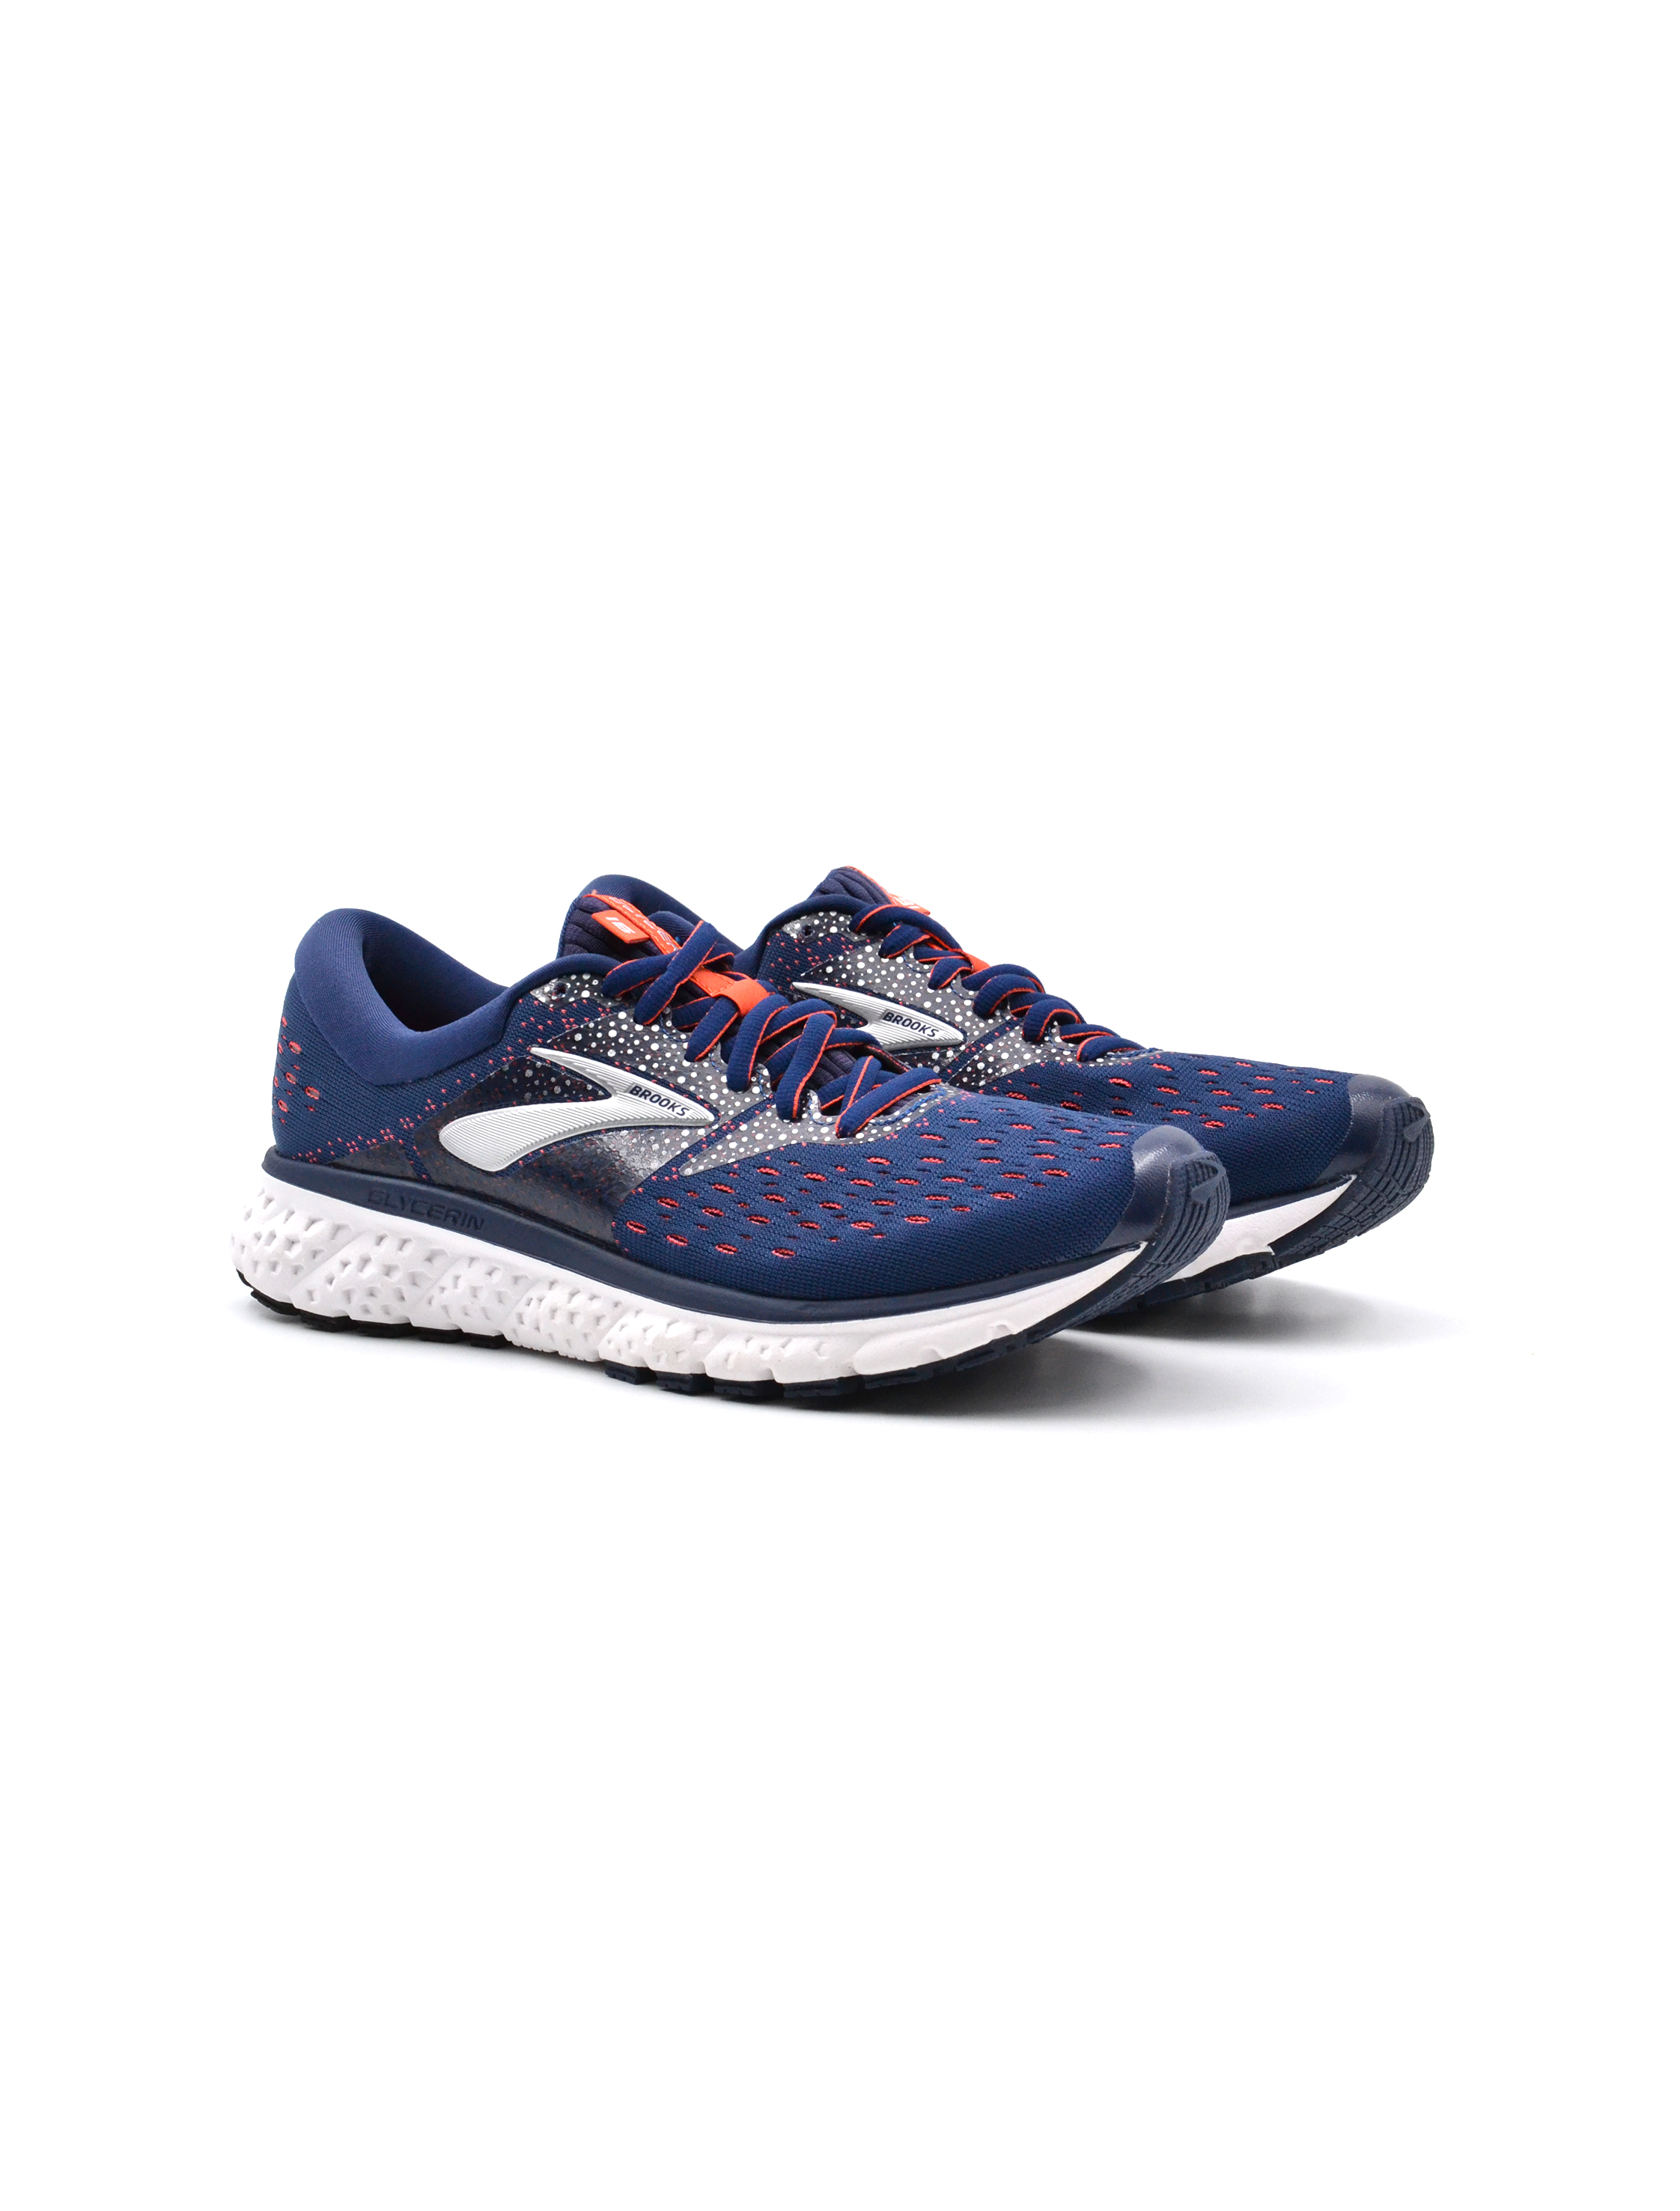 Brooks glycerin 16 scarpa running donna, Sneakers brand